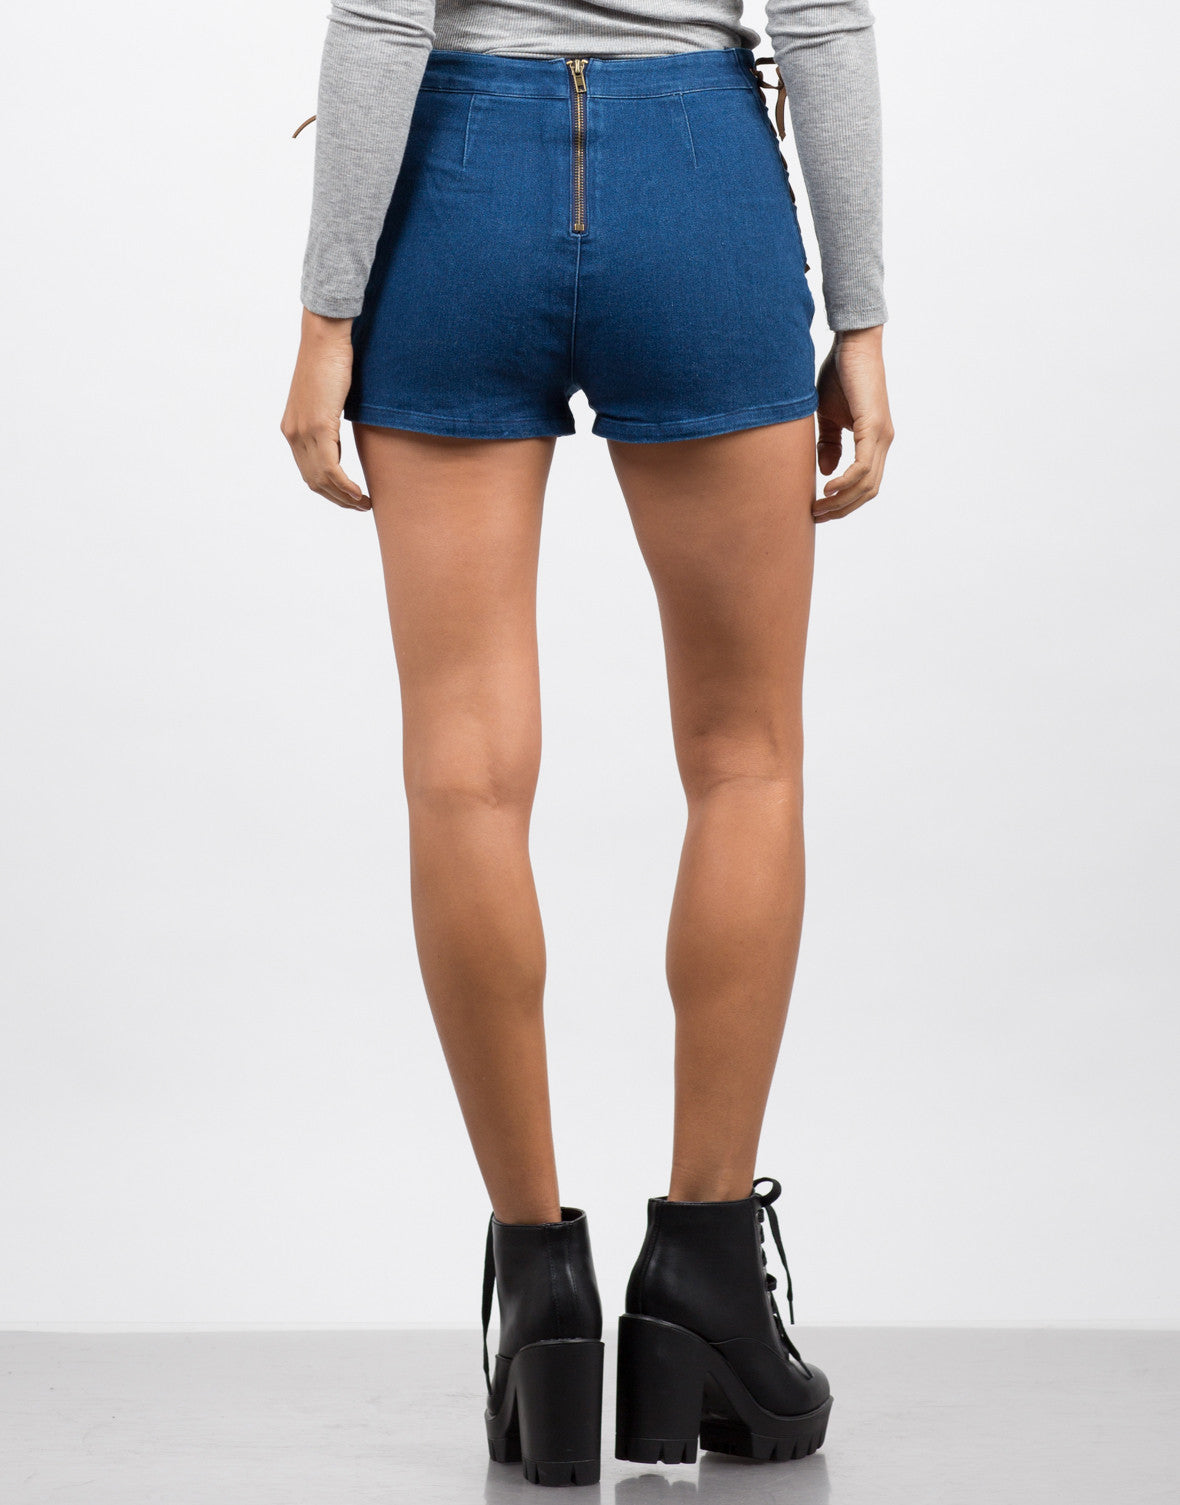 Back View of Lace Up Denim Shorts